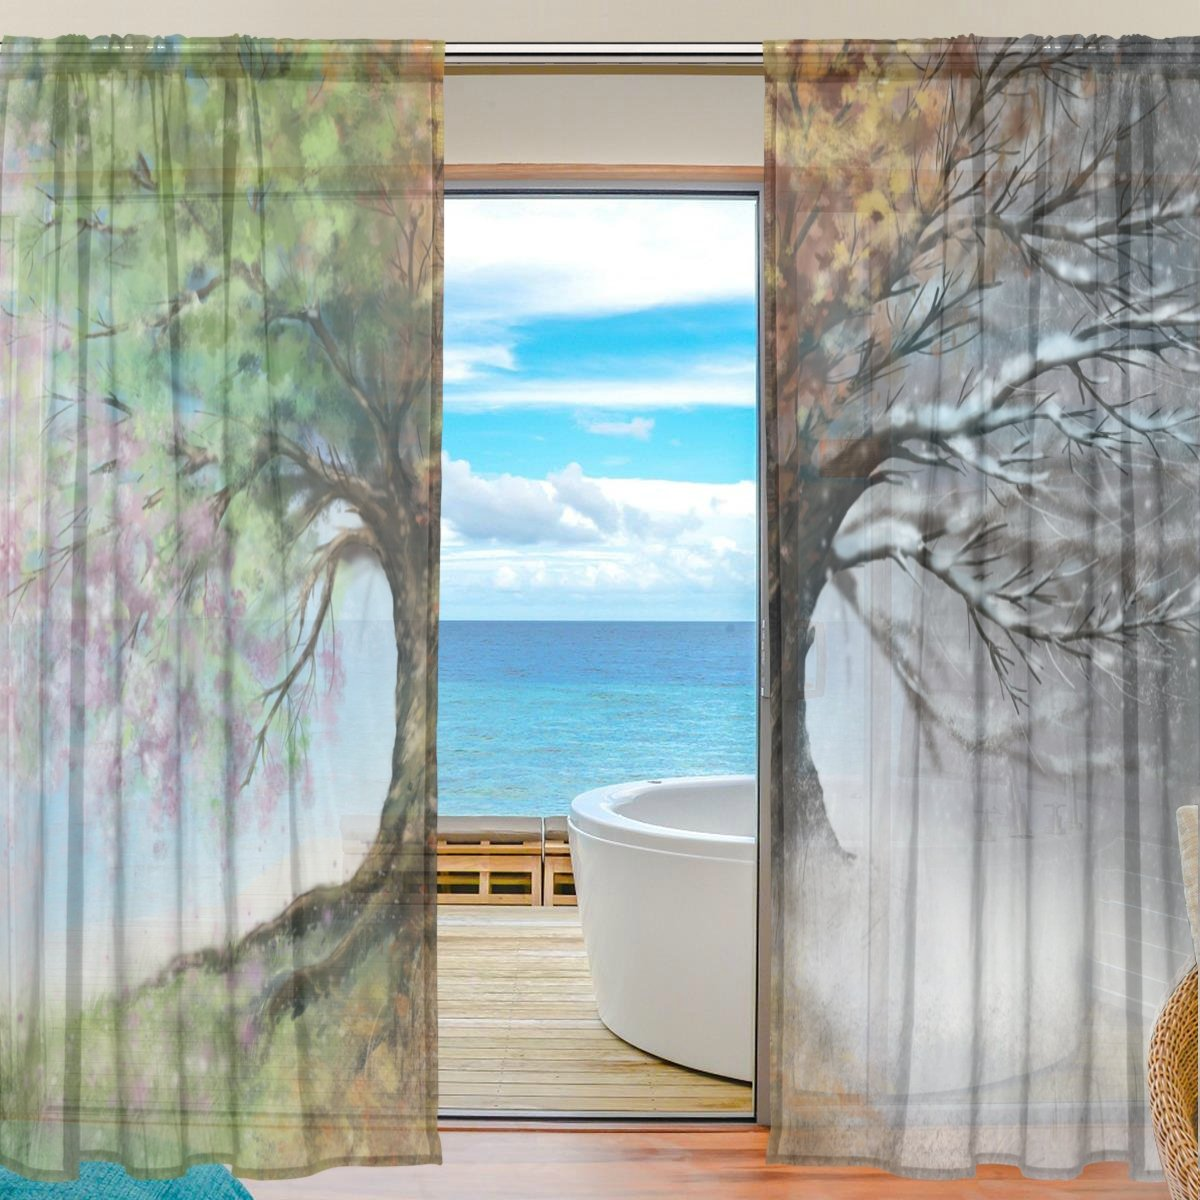 SEULIFE Window Sheer Curtain Tree of Life Voile Curtain Drapes for Door Kitchen Living Room Bedroom 55x78 inches 2 Panels